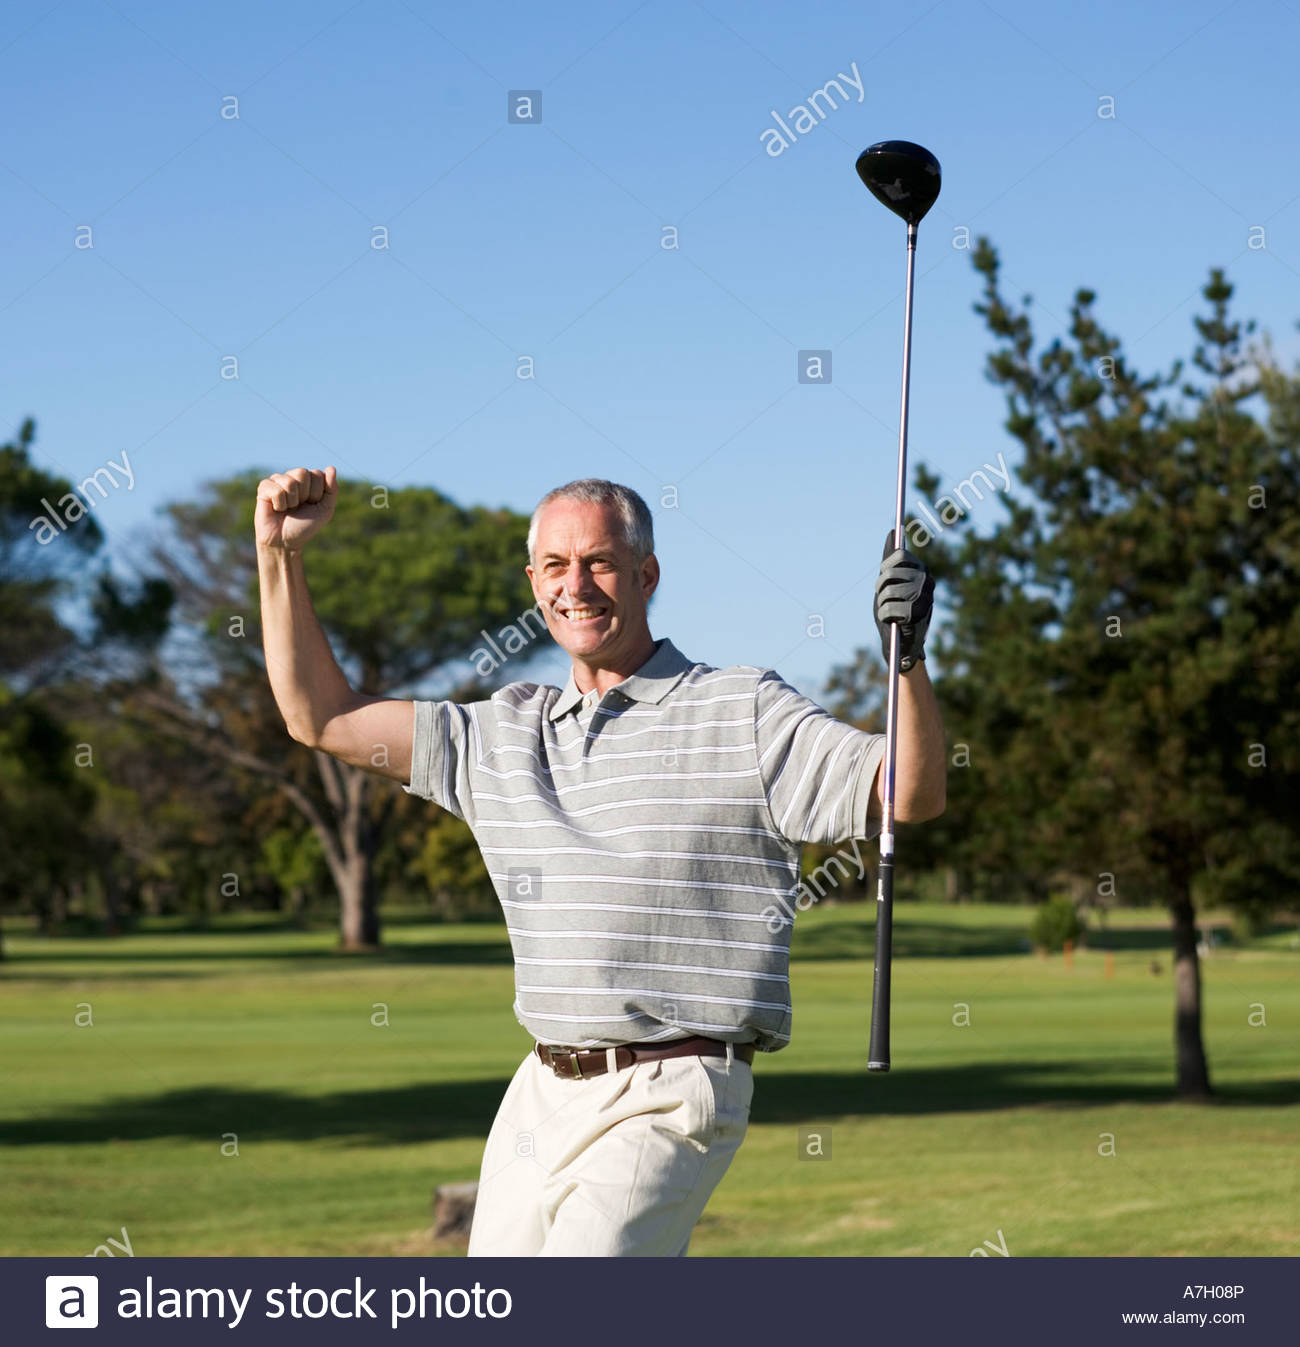 Success on the golf course - Stock Image